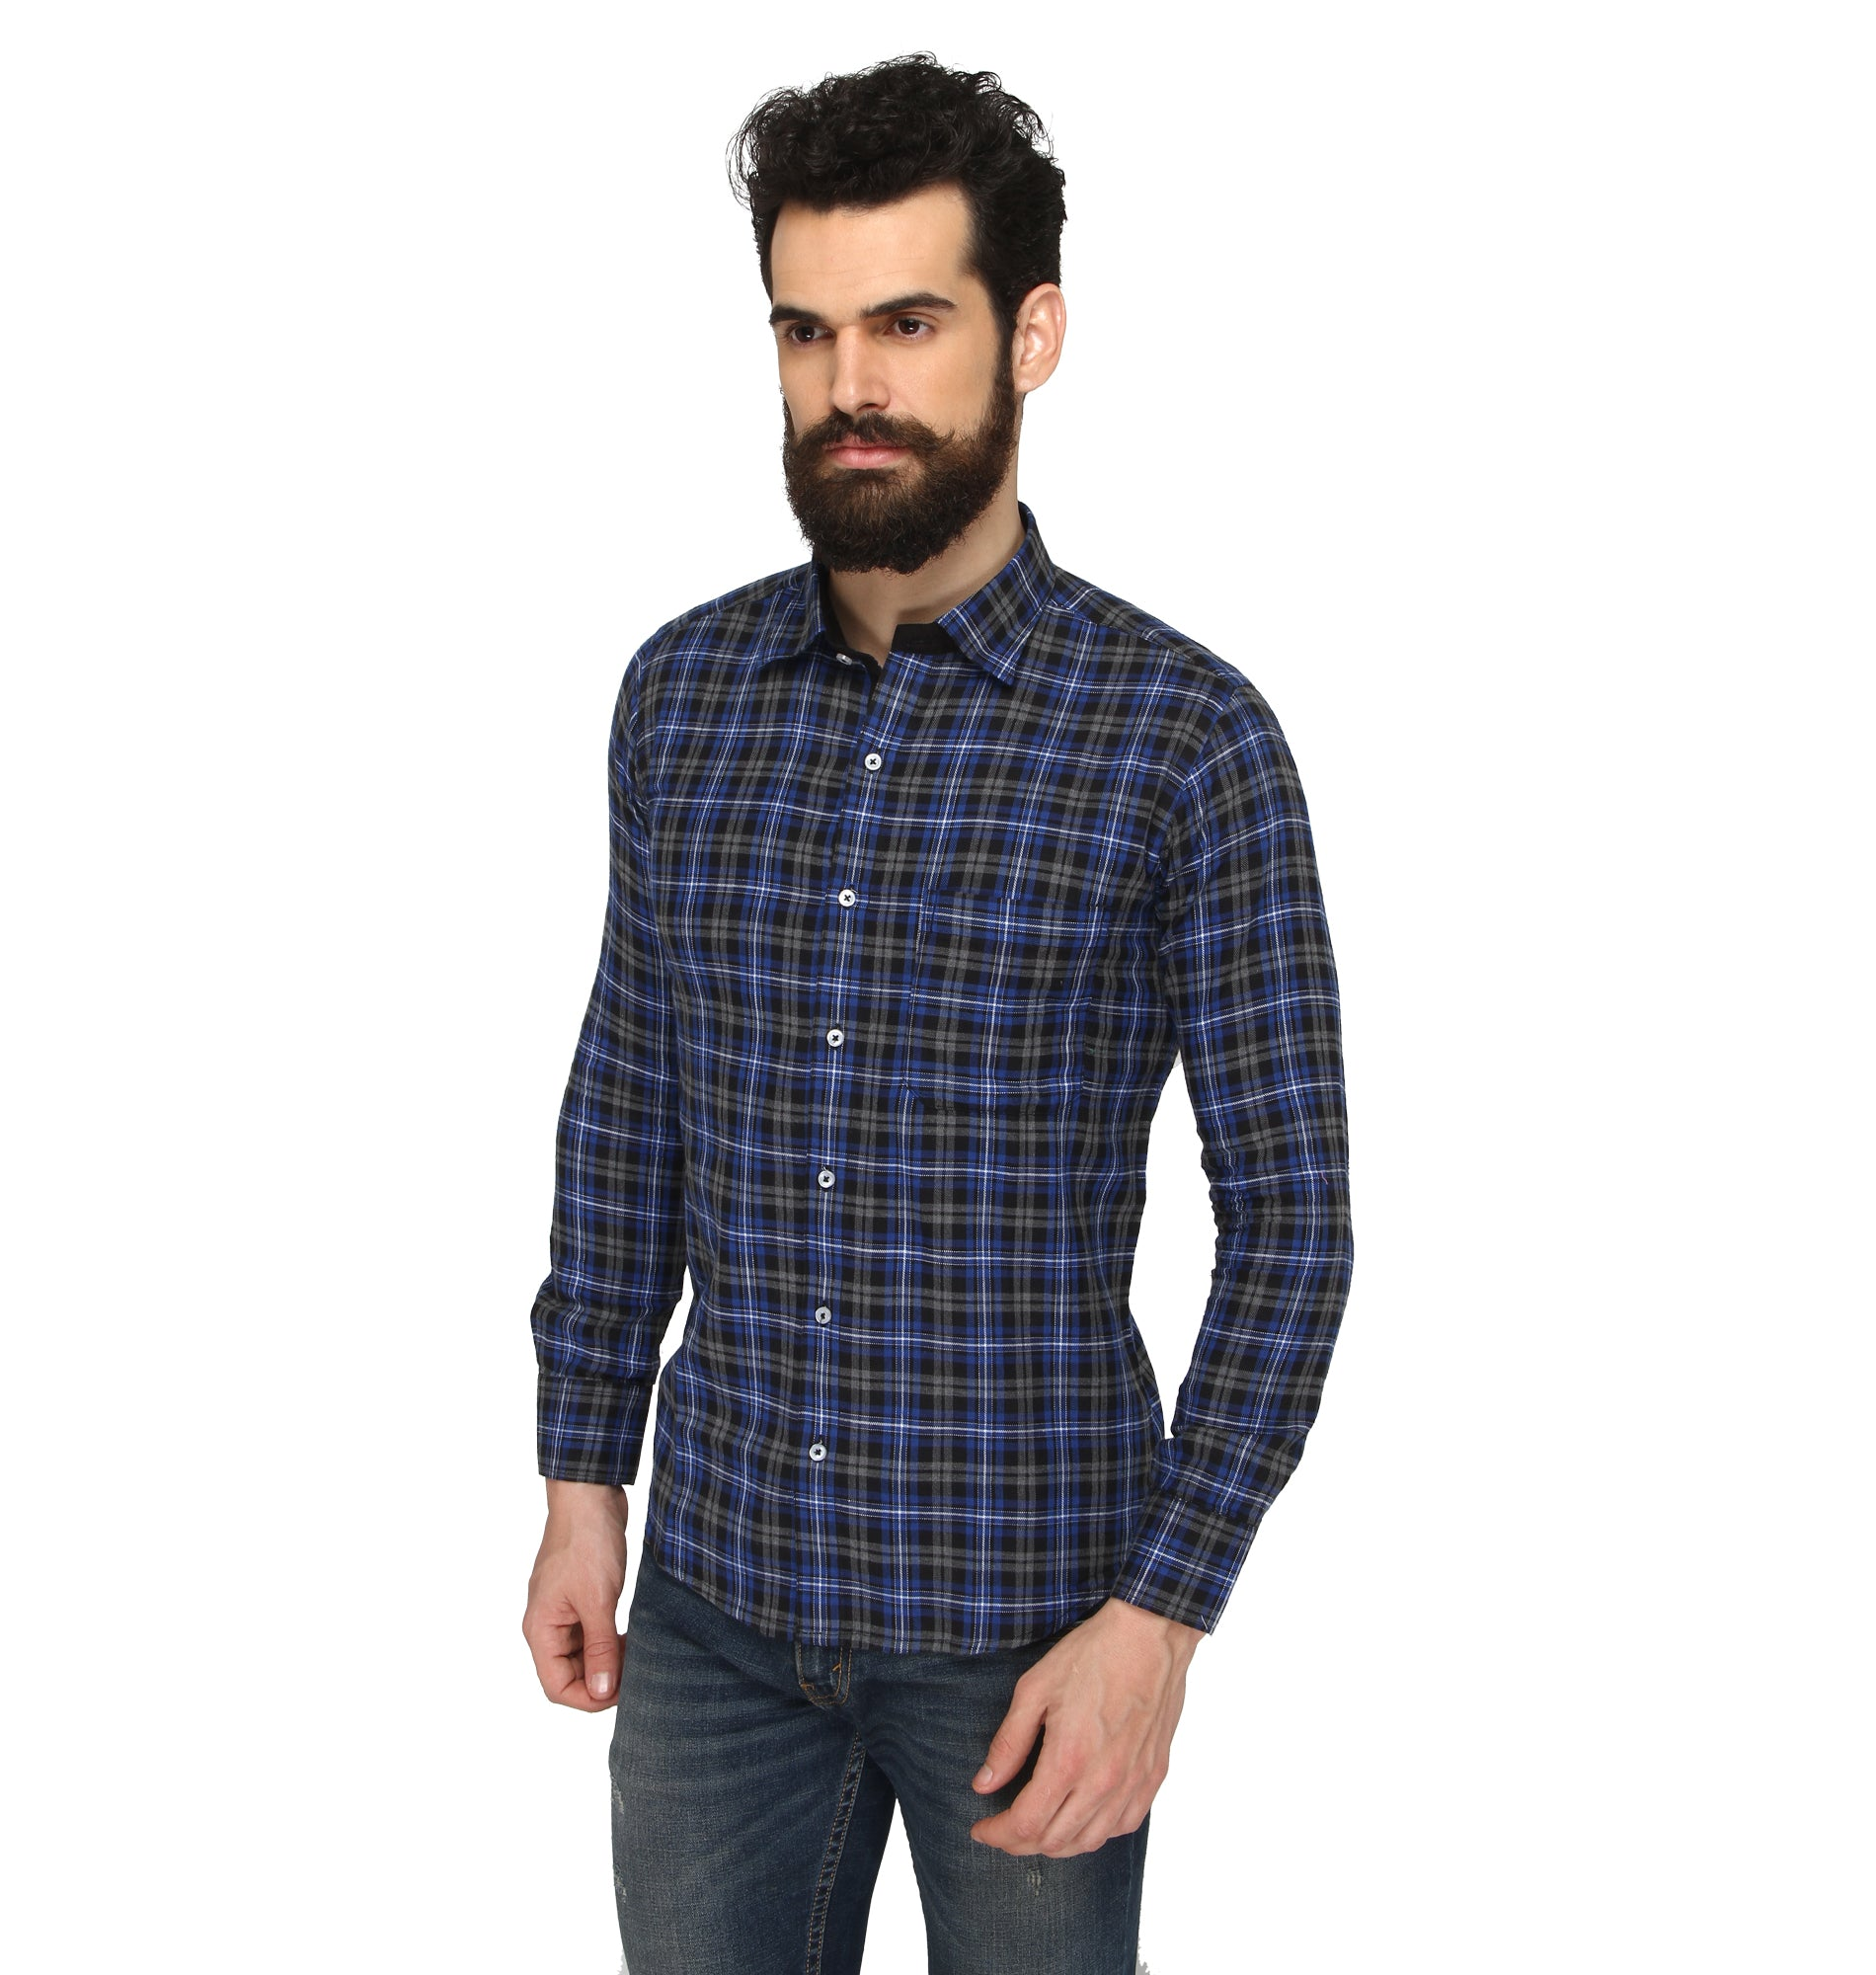 ZIDO Slim fit COTTON Checkered Shirt for Men's BTCH1369